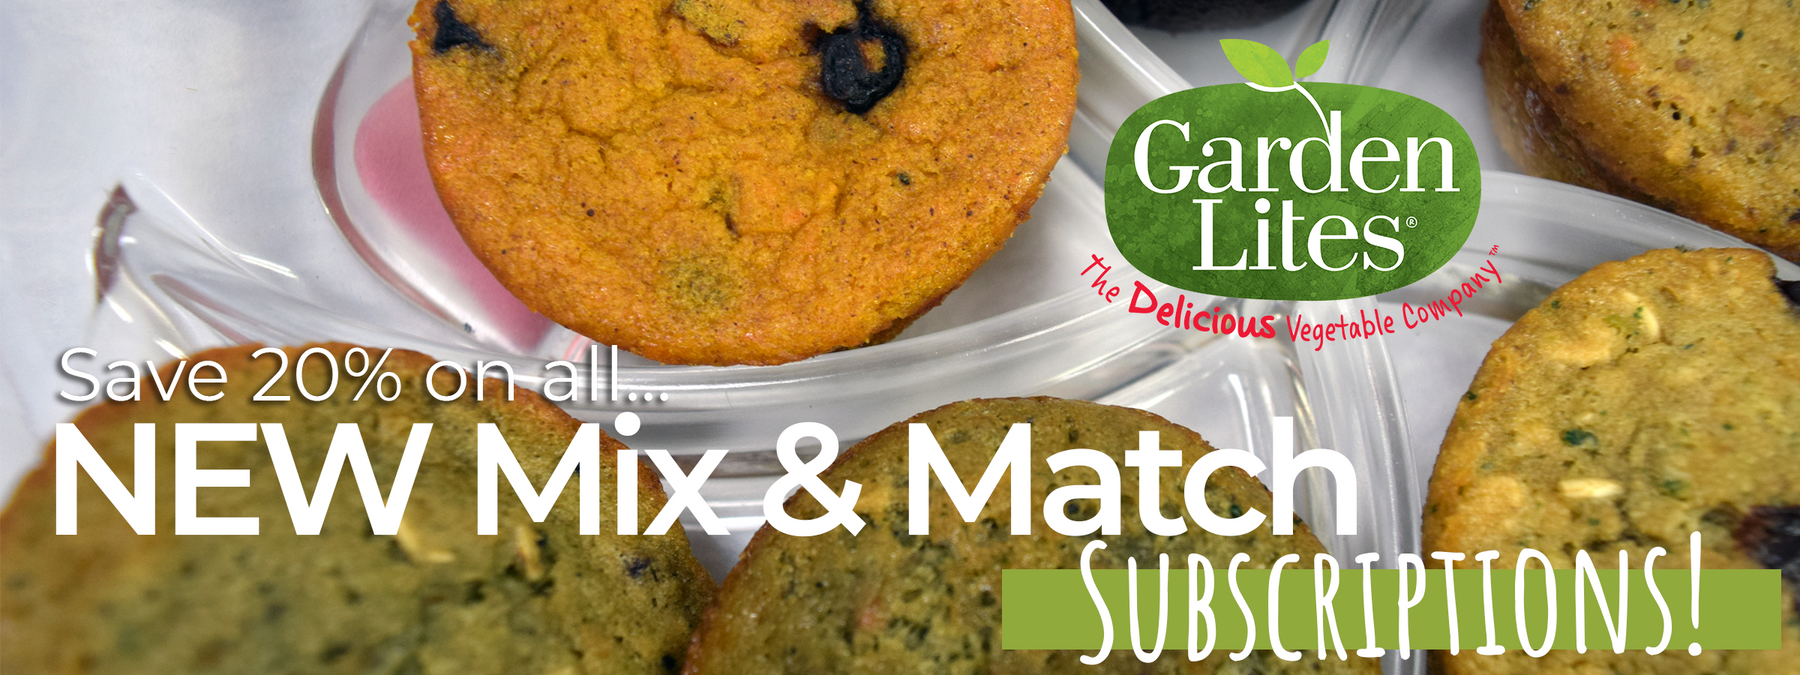 Garden Lites Mix & Match Subscriptions!